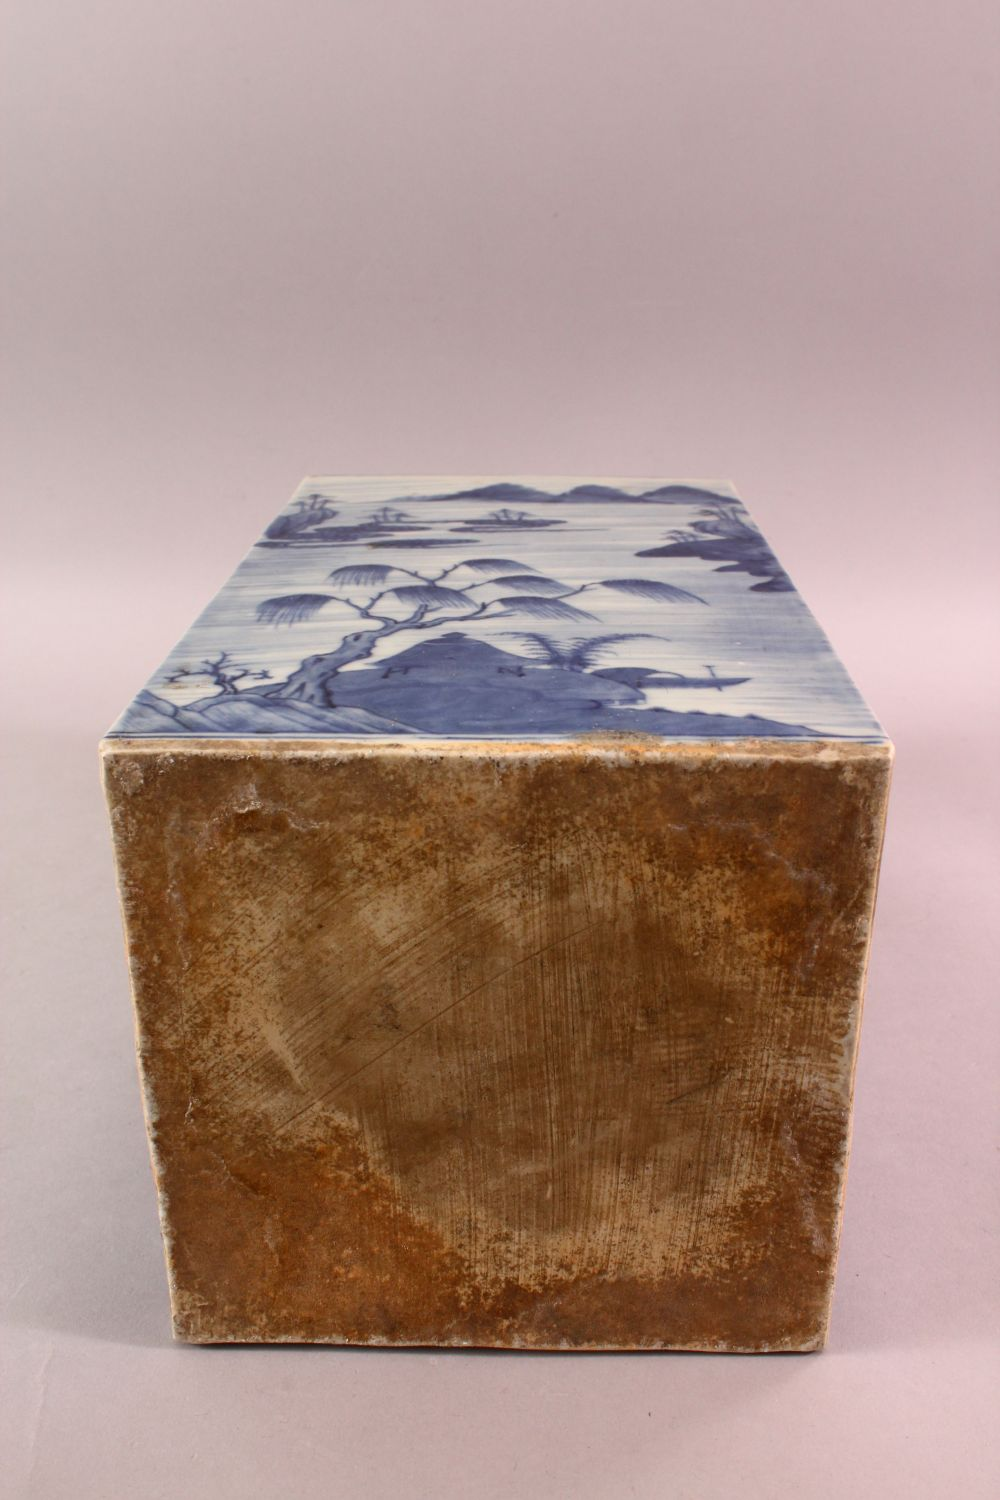 A LARGE CHINESE 18TH / 19TH CENTURY CHINESE BLUE & WHITE CADDY, decorated with landscape views, with - Image 5 of 5